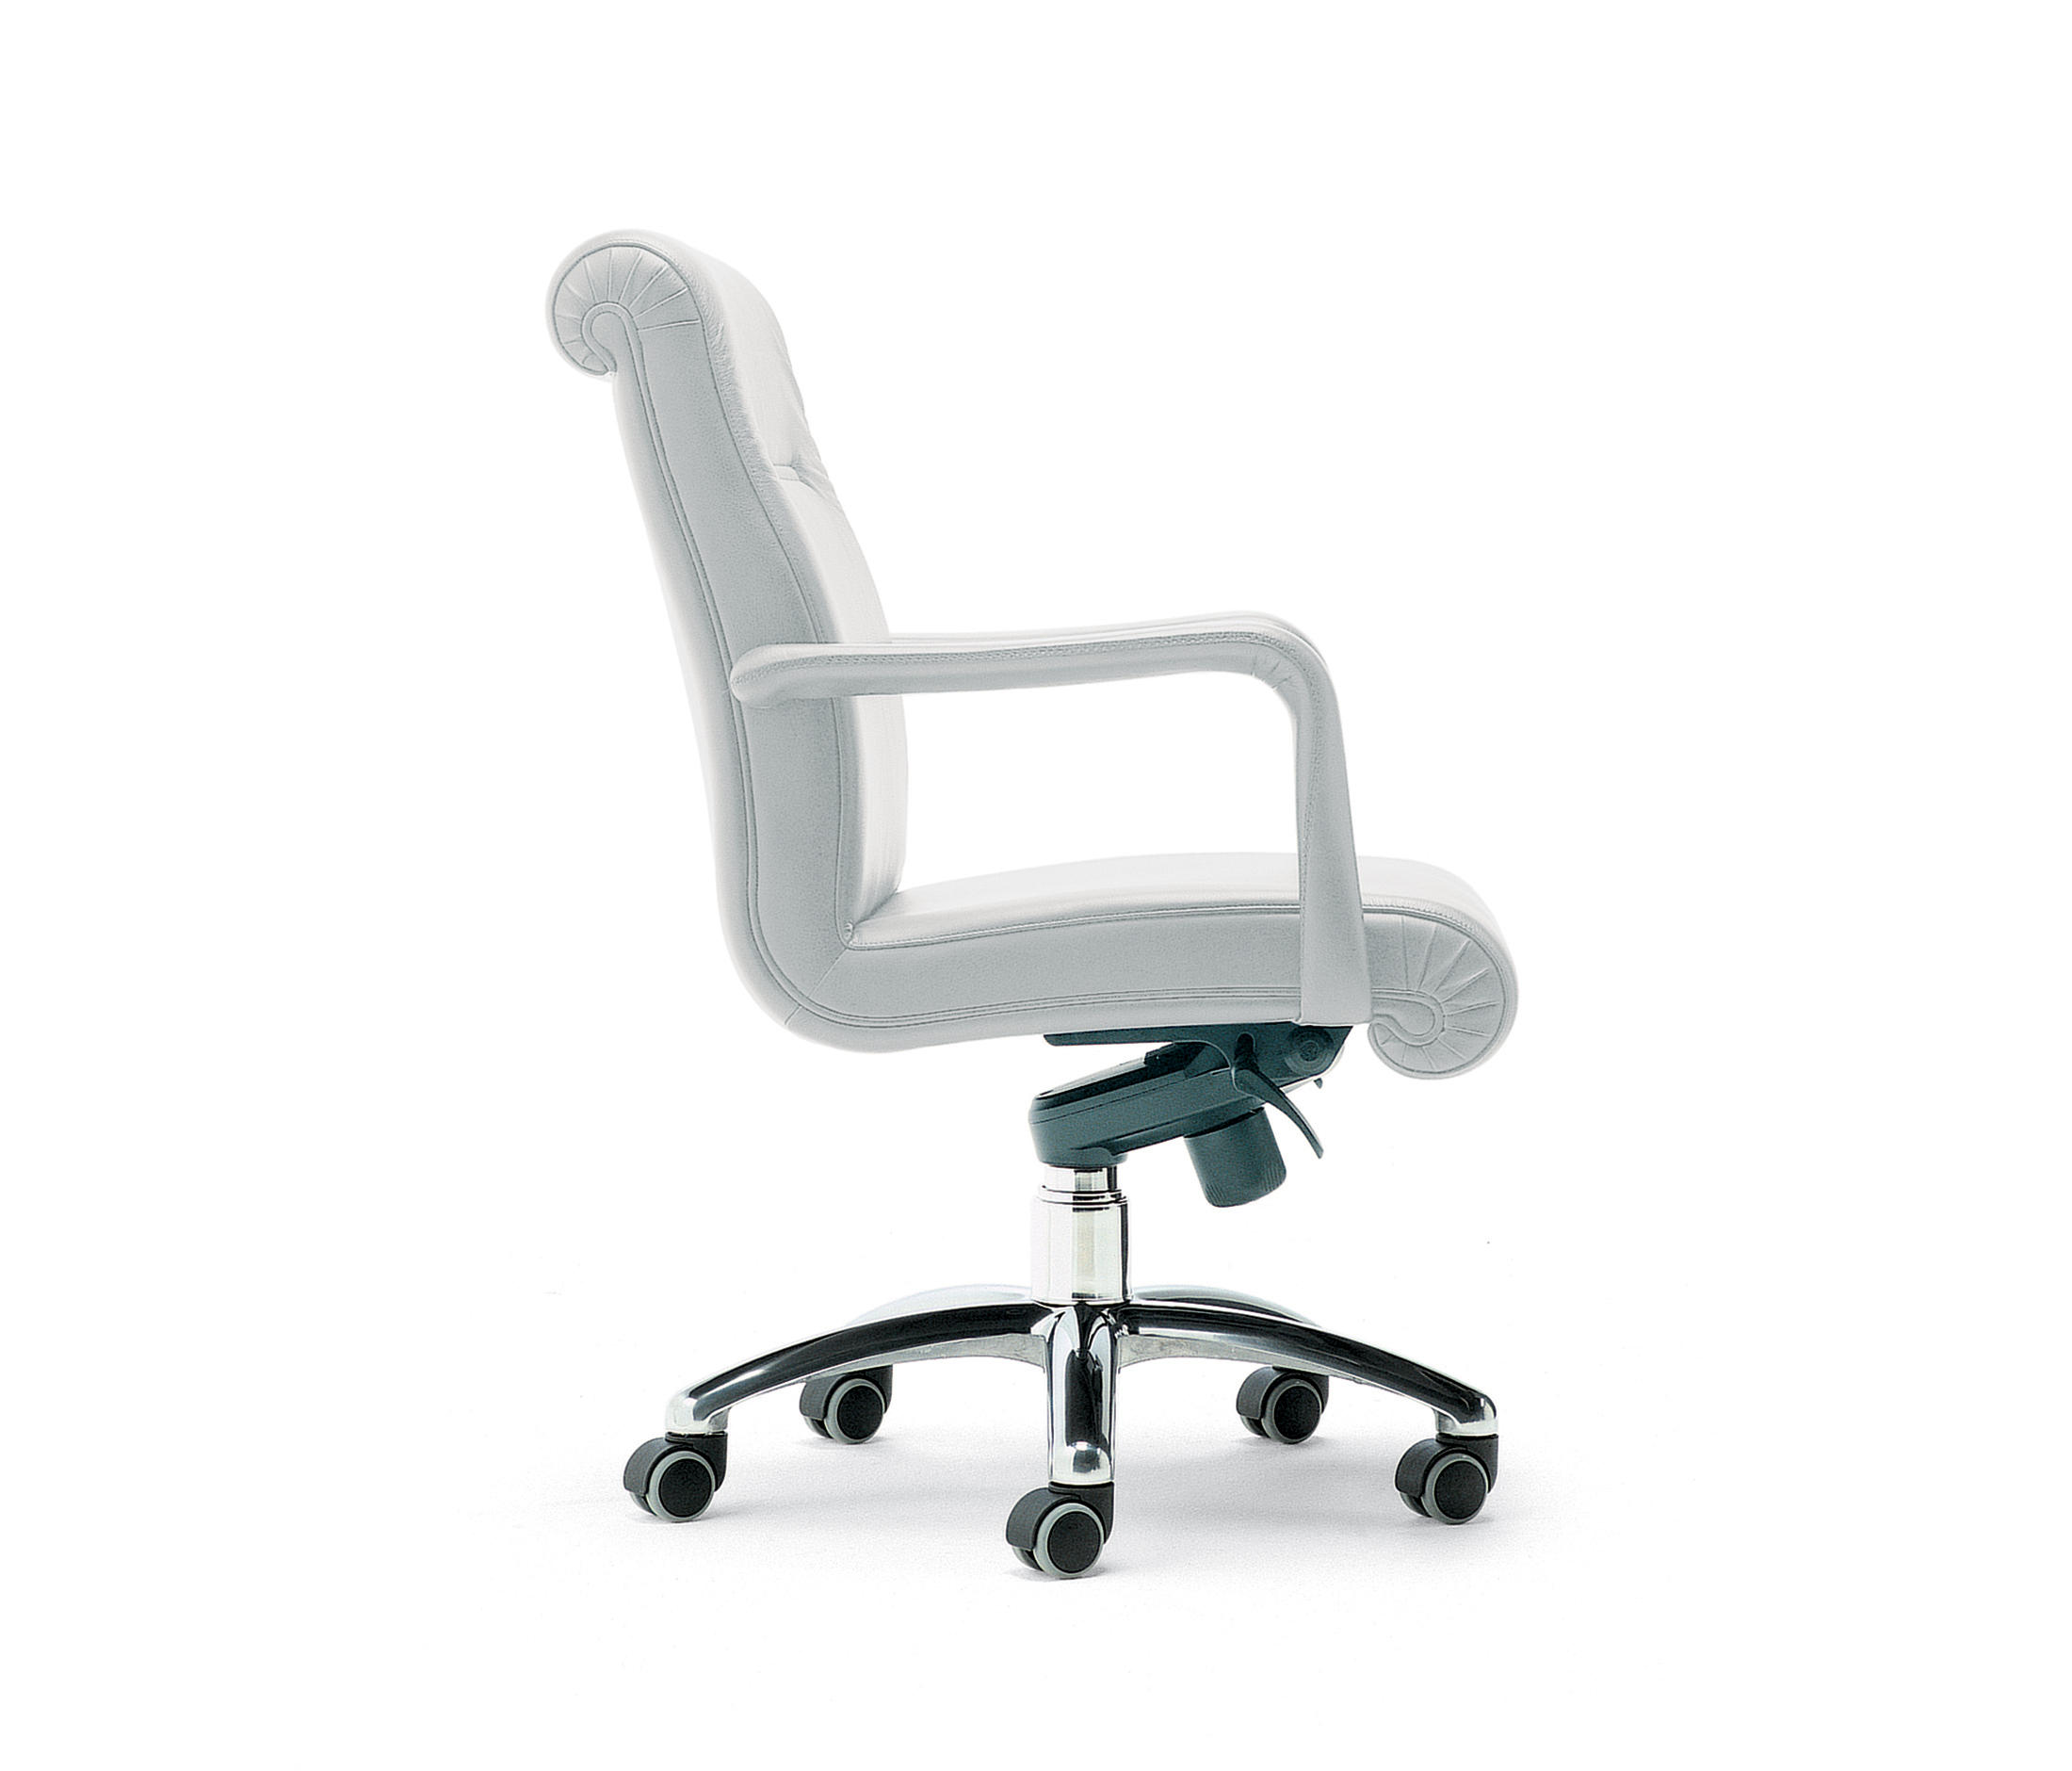 chairs hltsp endorse plastic task h endorsecollection back hon furniture n office stool armless white chair